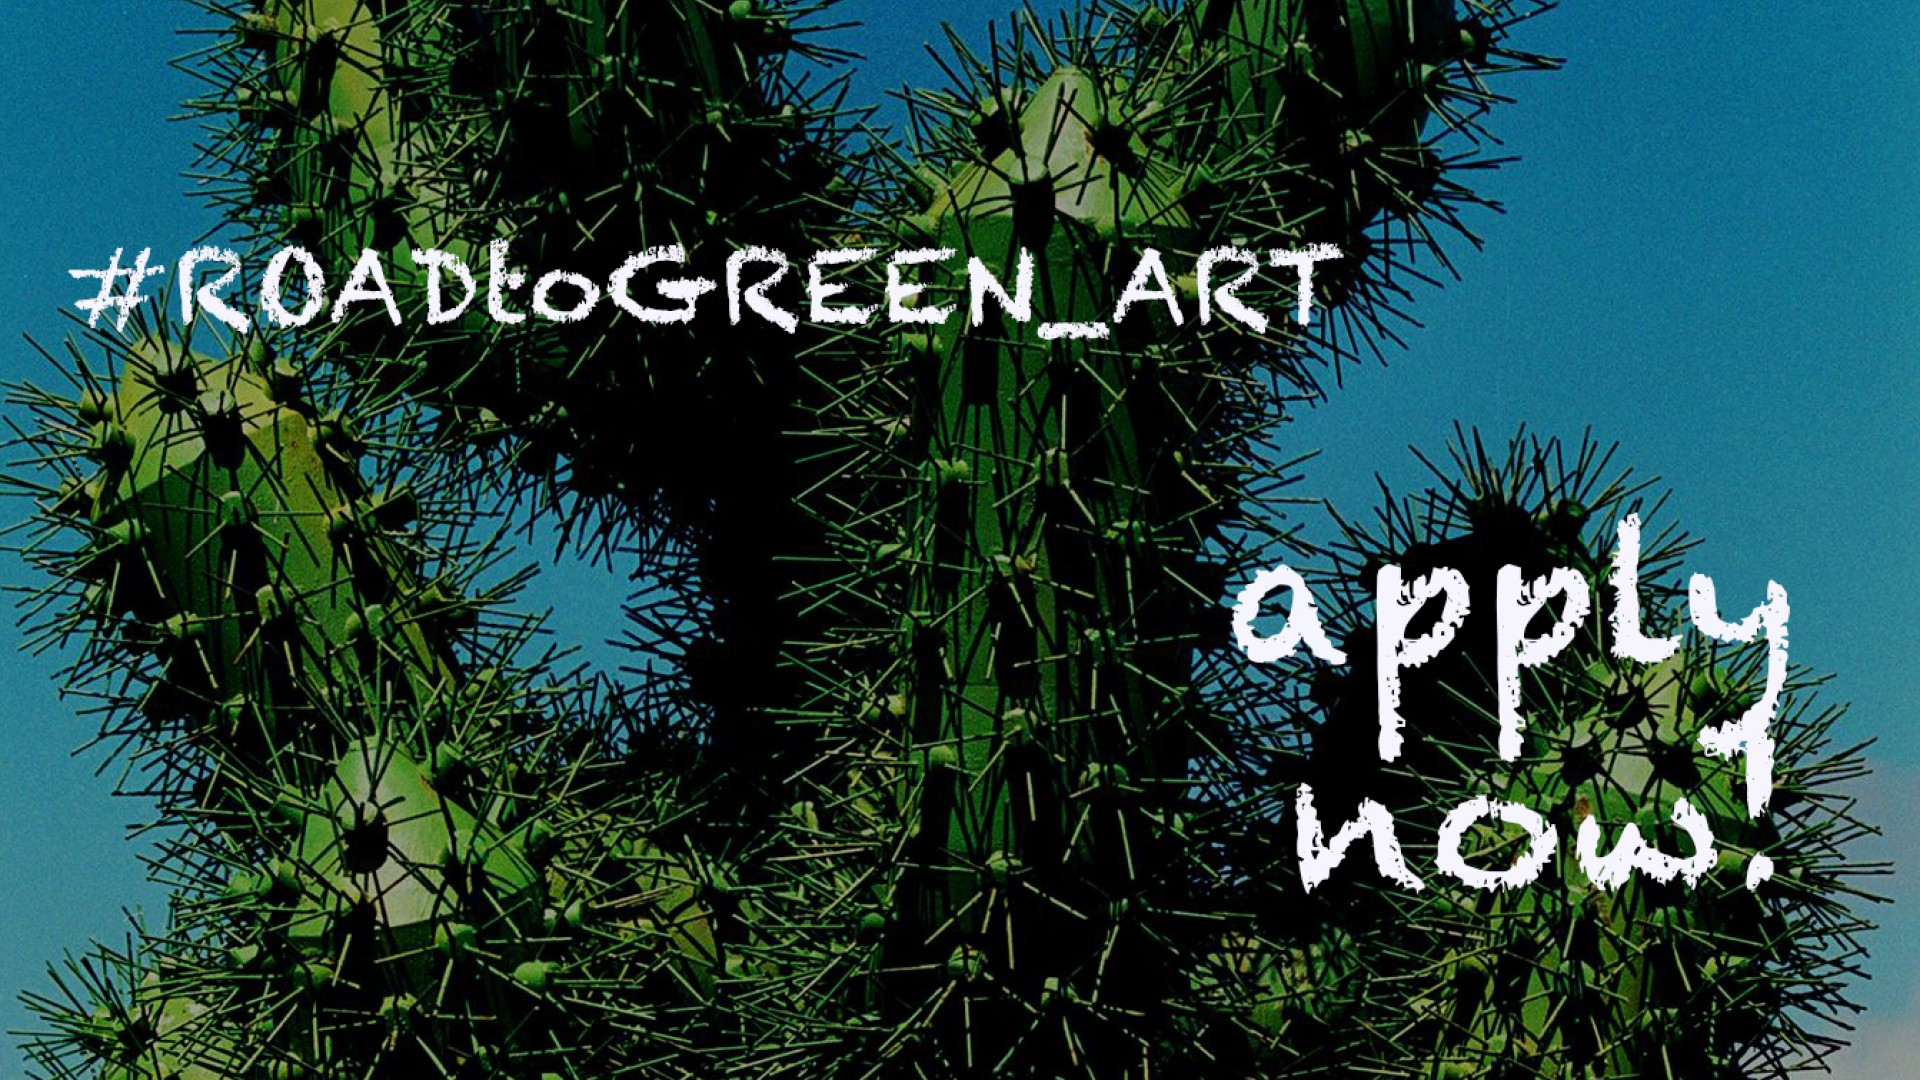 road to green art | ignite transfer 2018 | apply now